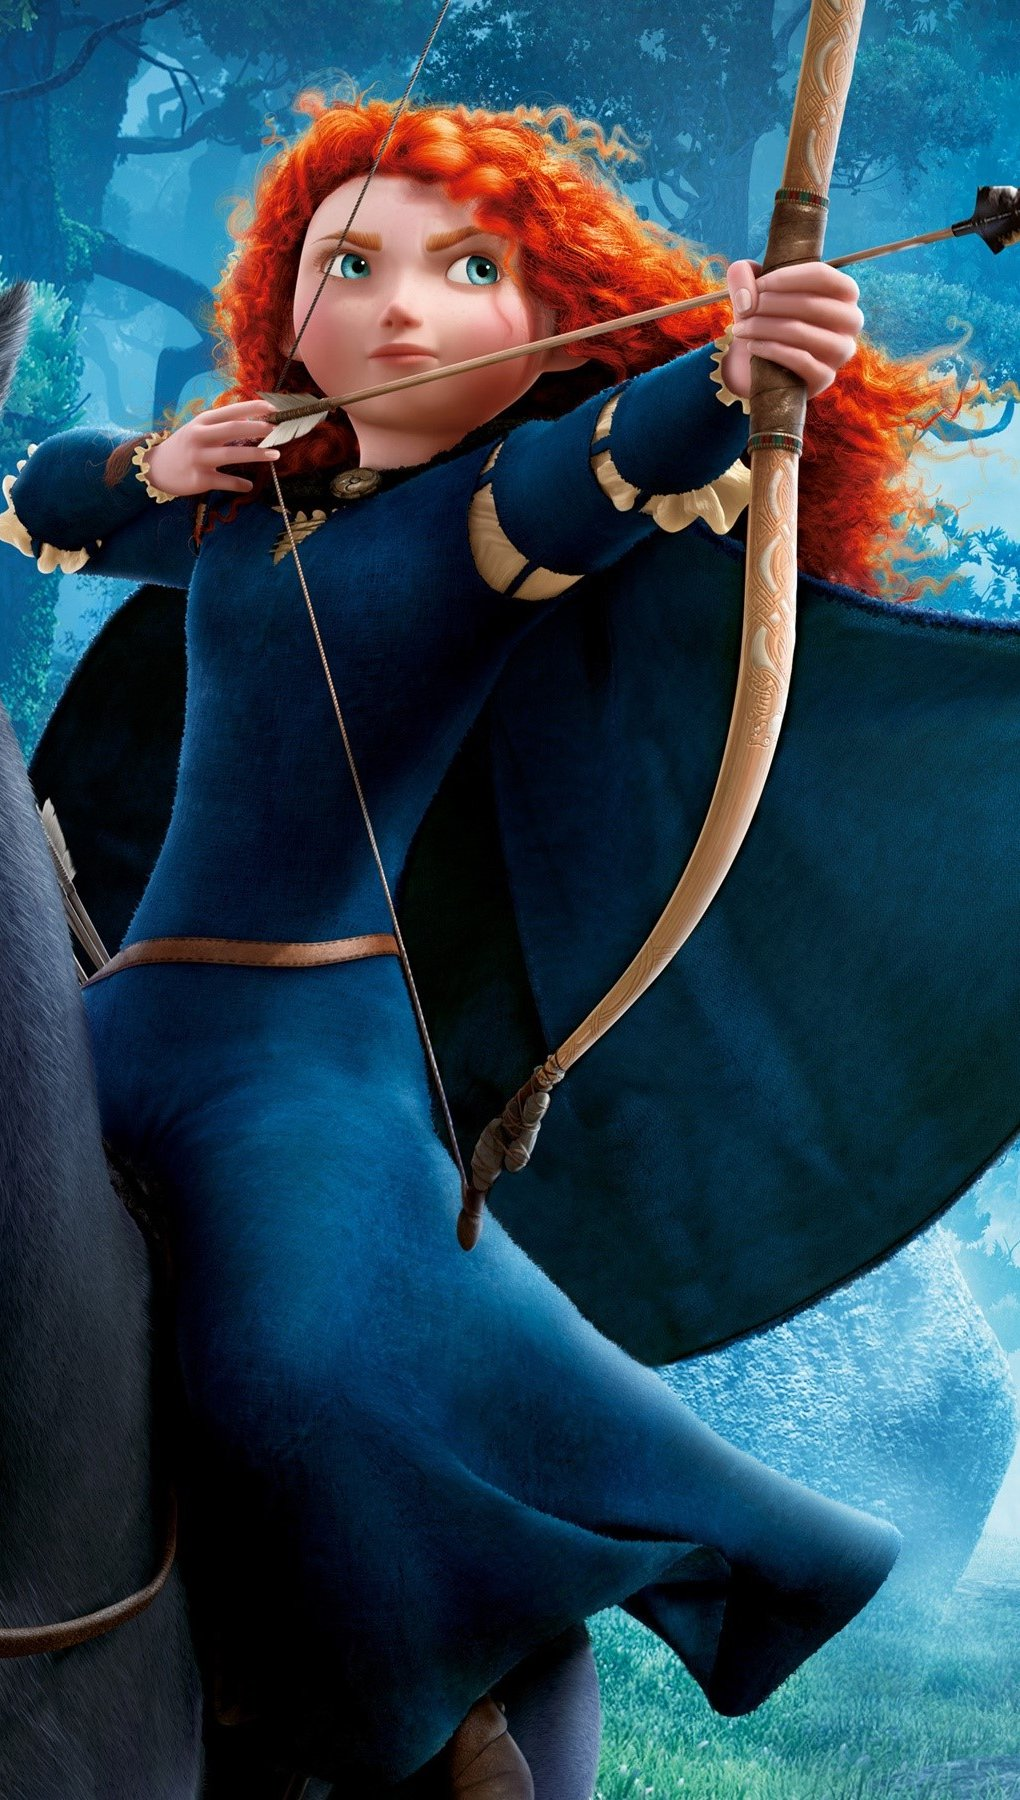 Wallpaper Princess Merida Vertical